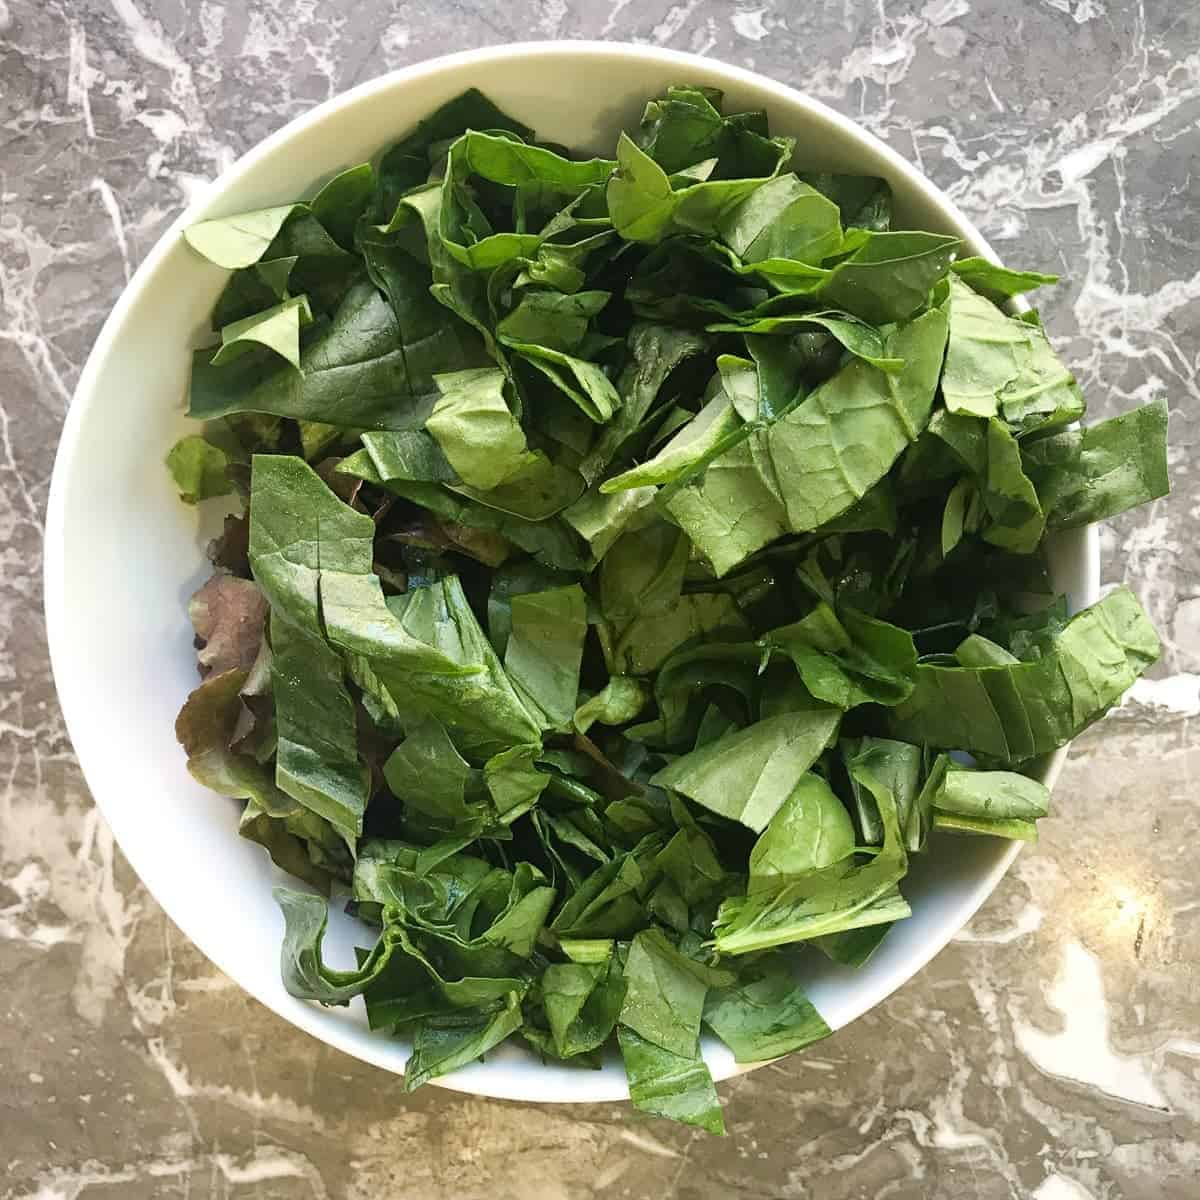 Add your healthy greens